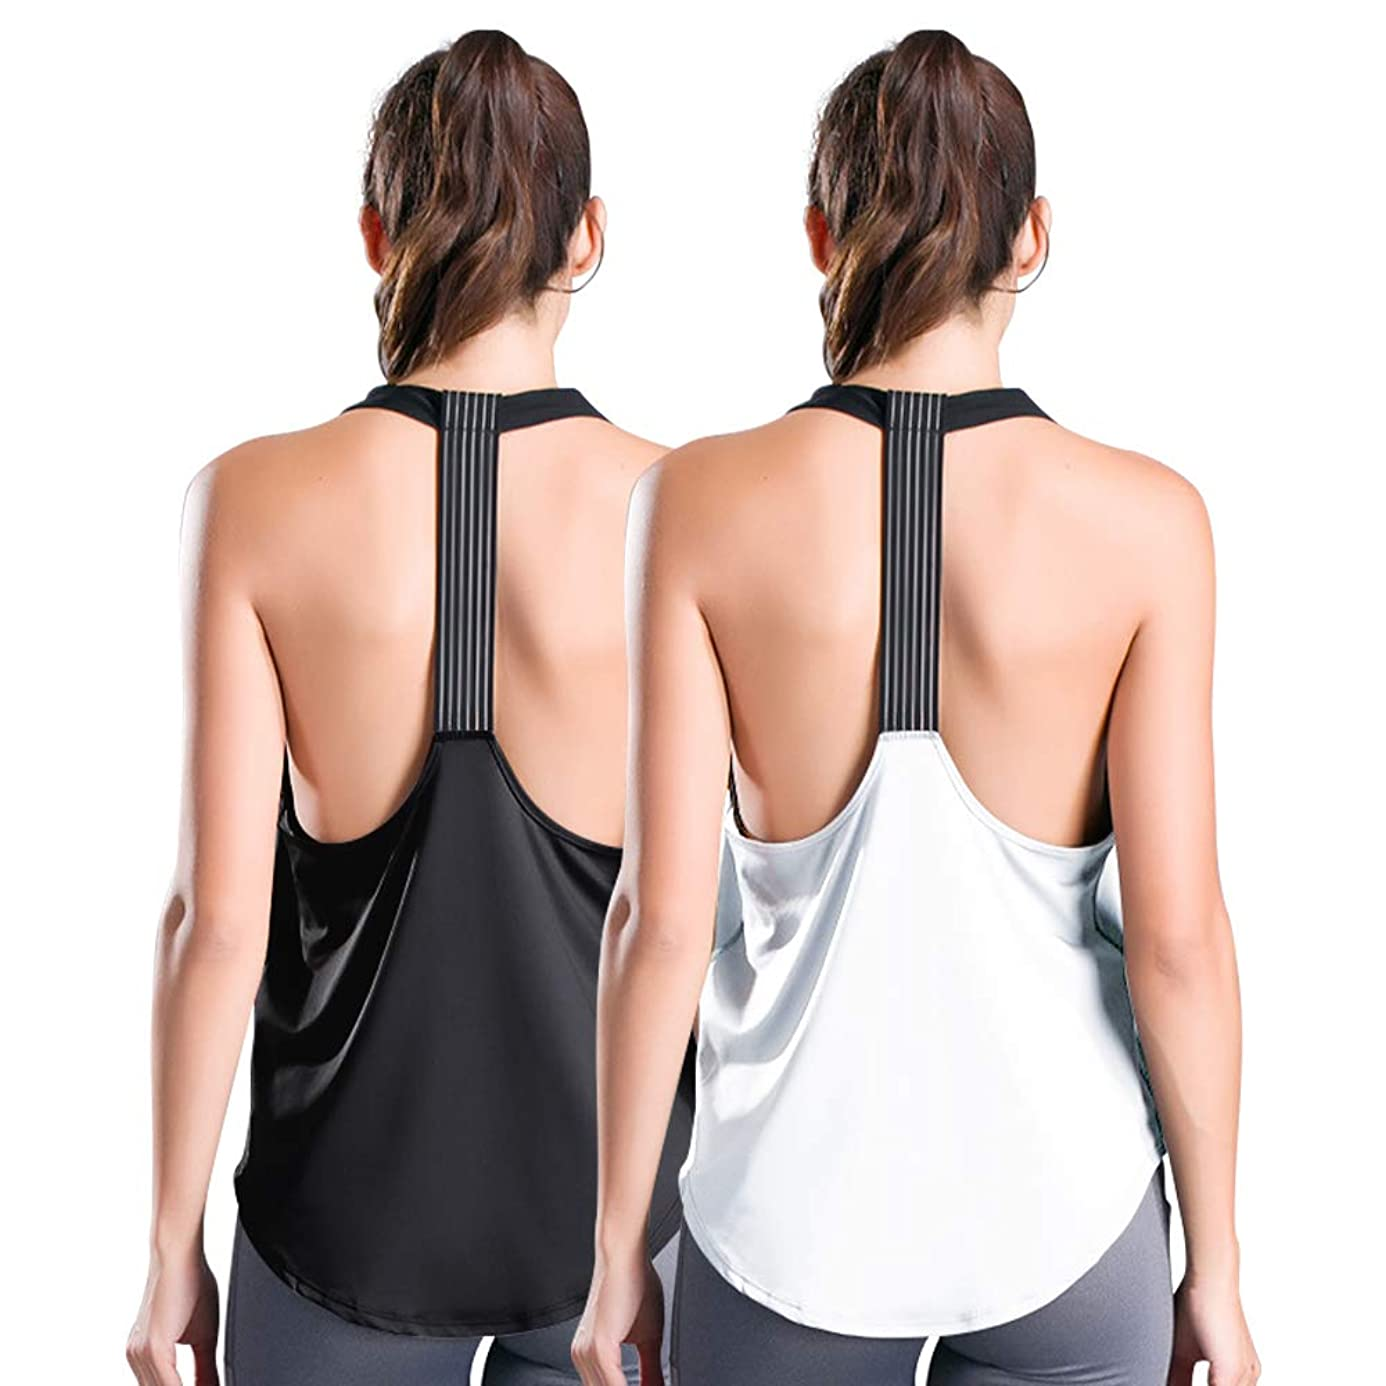 nine bull Women's Workout Tank Tops Sexy Backless Yoga Shirts Athletic Running Gym Quick Dry Tank Tops, 2 Pack